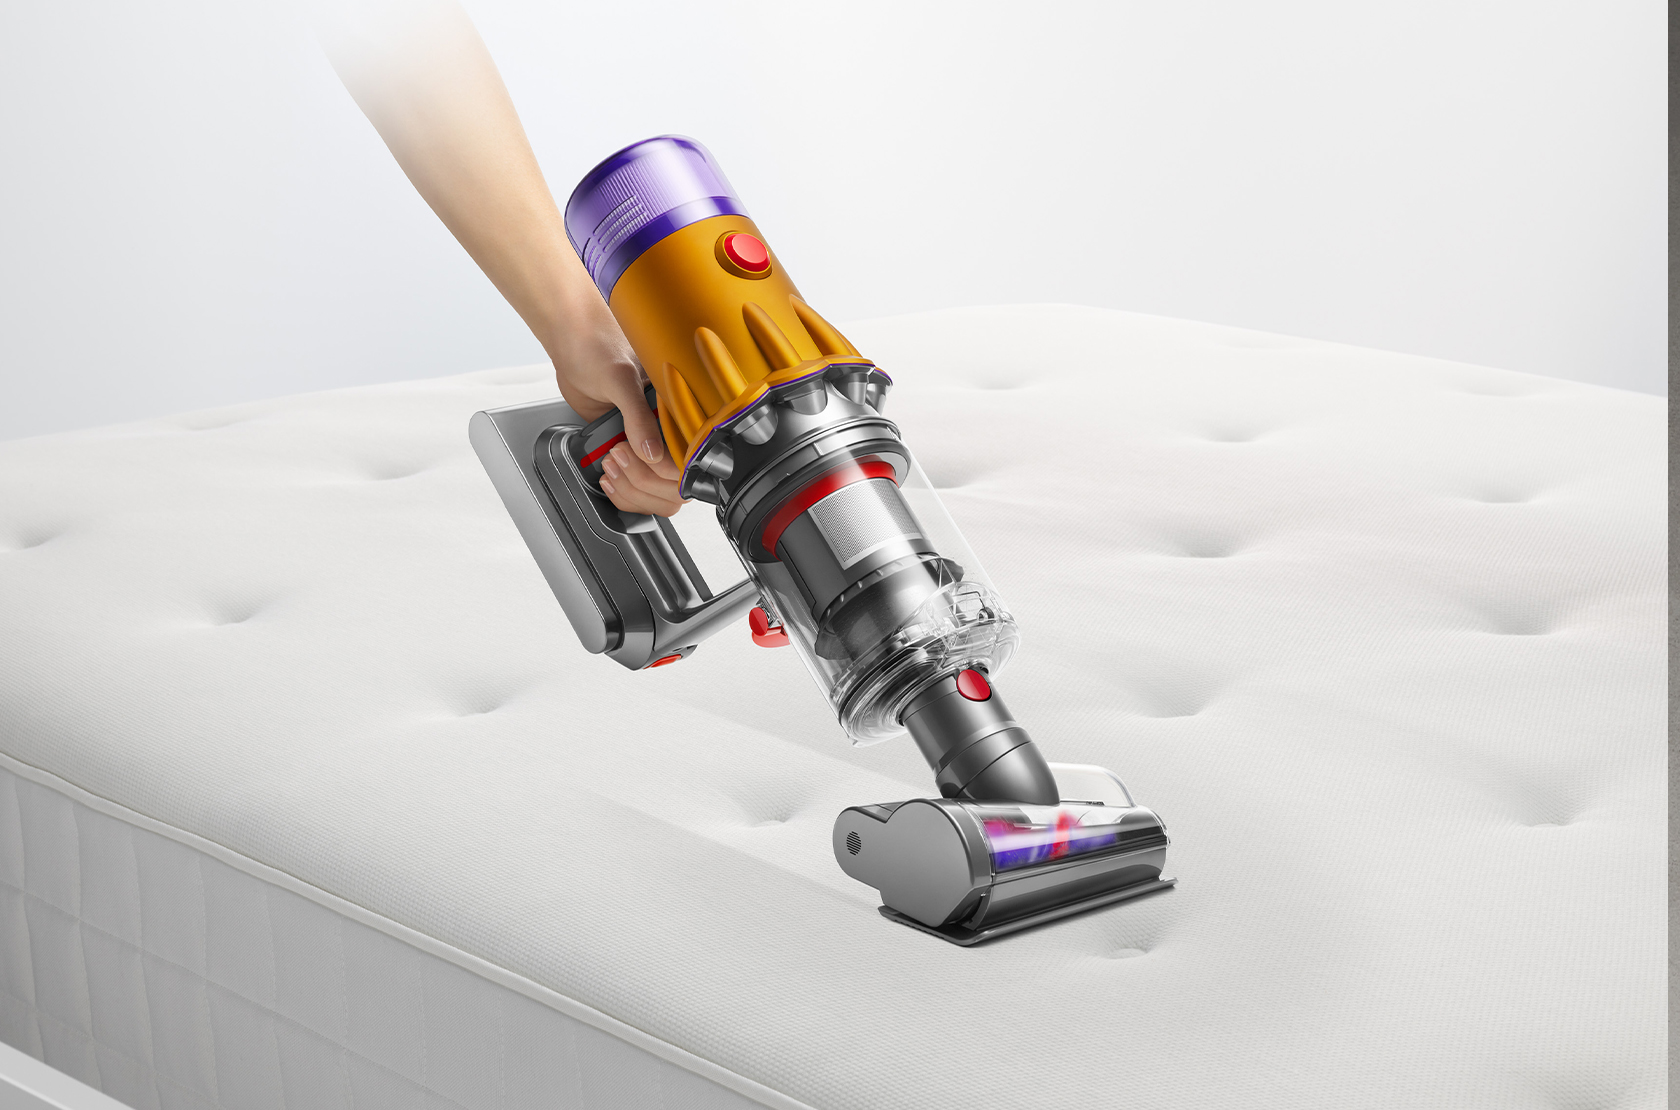 THIS NEW DYSON VACUUM CAN REVEAL HIDDEN DUST WITH ITS LASER FEATURE 7